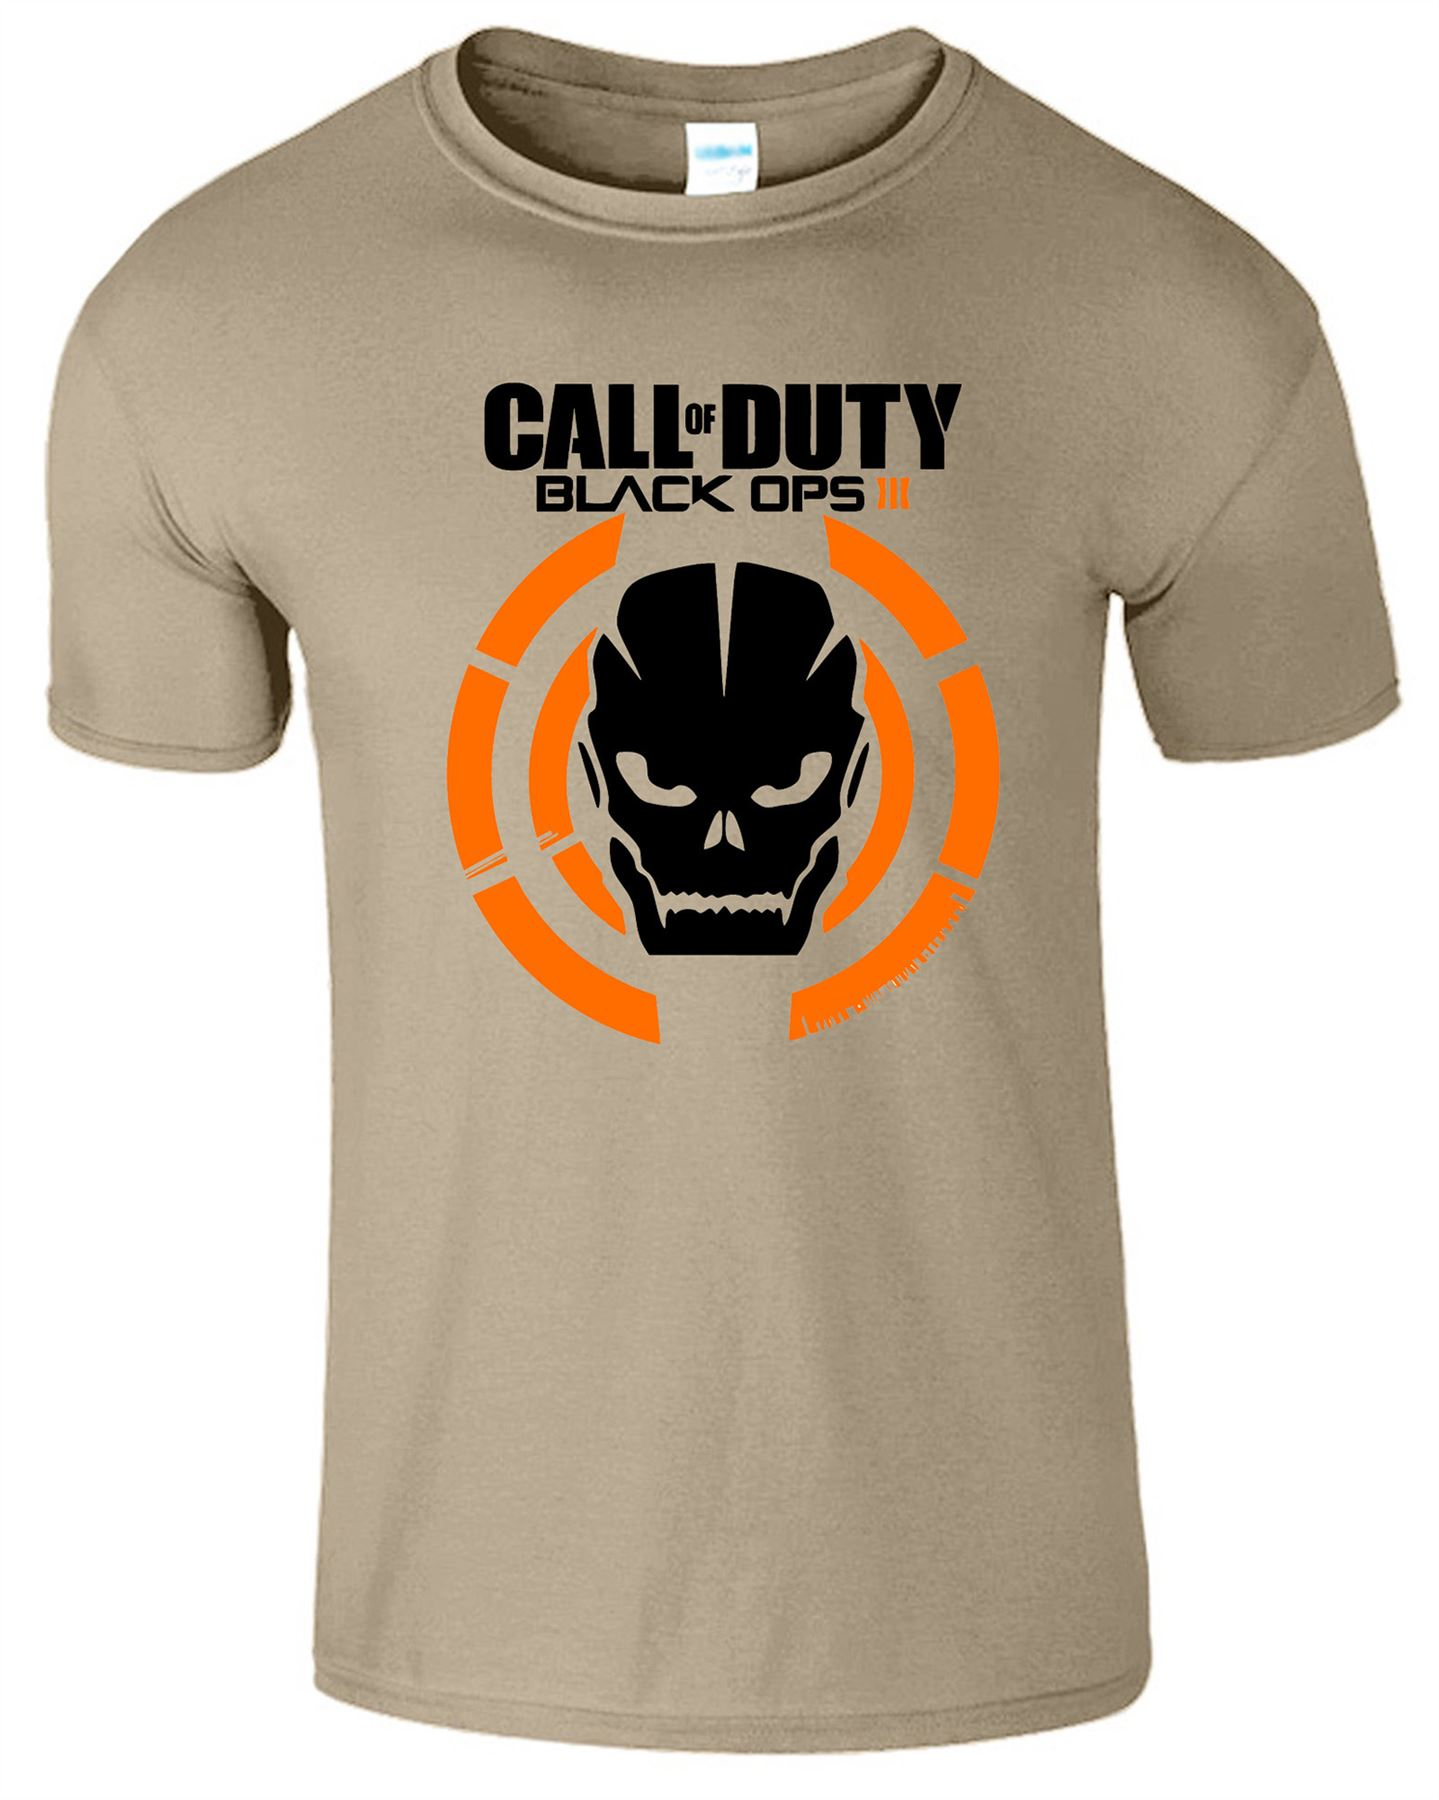 Duty-Black-Ops-Xbox-PS3-PS4-Game-Logo-With-Skull-Mens-Tshirt-Tee-Top-Gift miniatuur 13